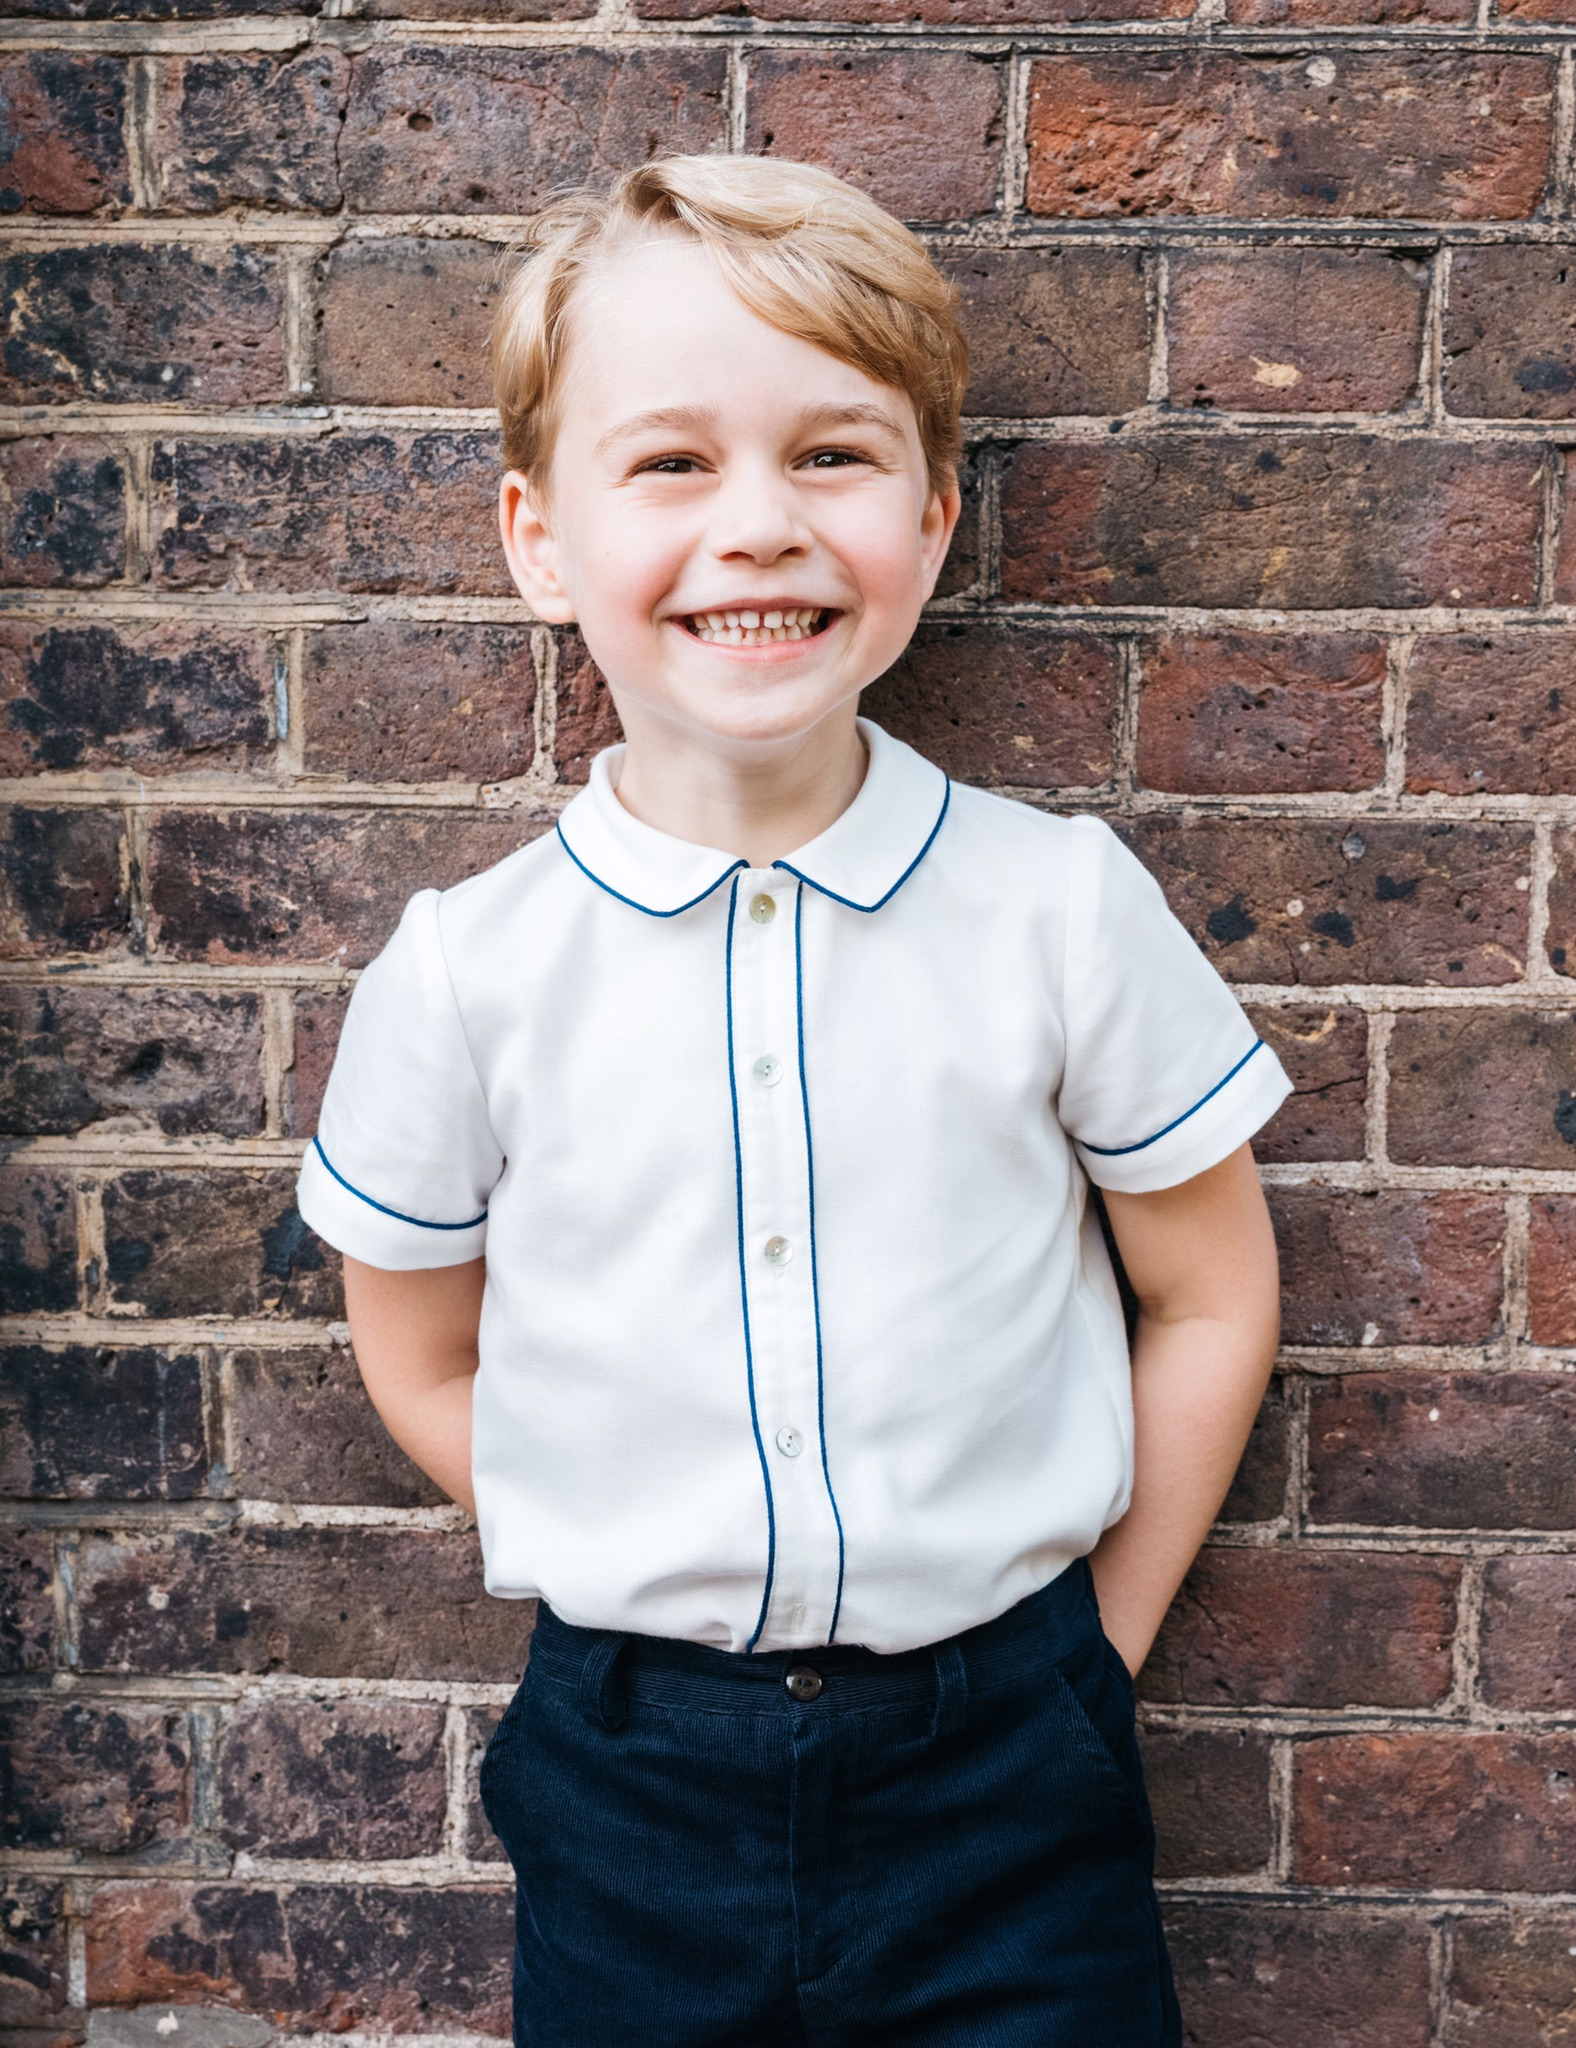 HANDOUT EDITORIAL USE ONLY/NO SALES/NO ARCHIVESMandatory Credit: Photo by Matt Porteous/KENSINGTON PALACE/HANDOUT/EPA-EFE/REX/Shutterstock (9767295a)Prince GeorgePrince George turns 5, London, United Kingdom - 21 Jul 2018A handout photo made available by the Duke and Duchess of Cambridge via PA on 21 July 2018 to mark the fifth birthday of Britain's Prince George. The picture was taken in the garden at Clarence House in London, Britain on 09 July 2018, following the christening of Prince Louis. Prince George will celebrate his 5th birthday on 22 July 2018.ATTENTION EDITORS: NEWS EDITORIAL USE ONLY. NO COMMERCIAL USE. NO MERCHANDISING, ADVERTISING, SOUVENIRS, MEMORABILIA or COLOURABLY SIMILAR. NOT FOR USE AFTER 31 DECEMBER 2018 WITHOUT PRIOR PERMISSION FROM KENSINGTON PALACE. Copyright in the photograph is vested in The Duke and Duchess of Cambridge. Publications are asked to credit the photographs to Matt Porteous. No charge should be made for the supply, release or publication of the photograph. The photograph must not be digitally enhanced, manipulated or modified in any manner or form and must include all of the individuals in the photograph when published.